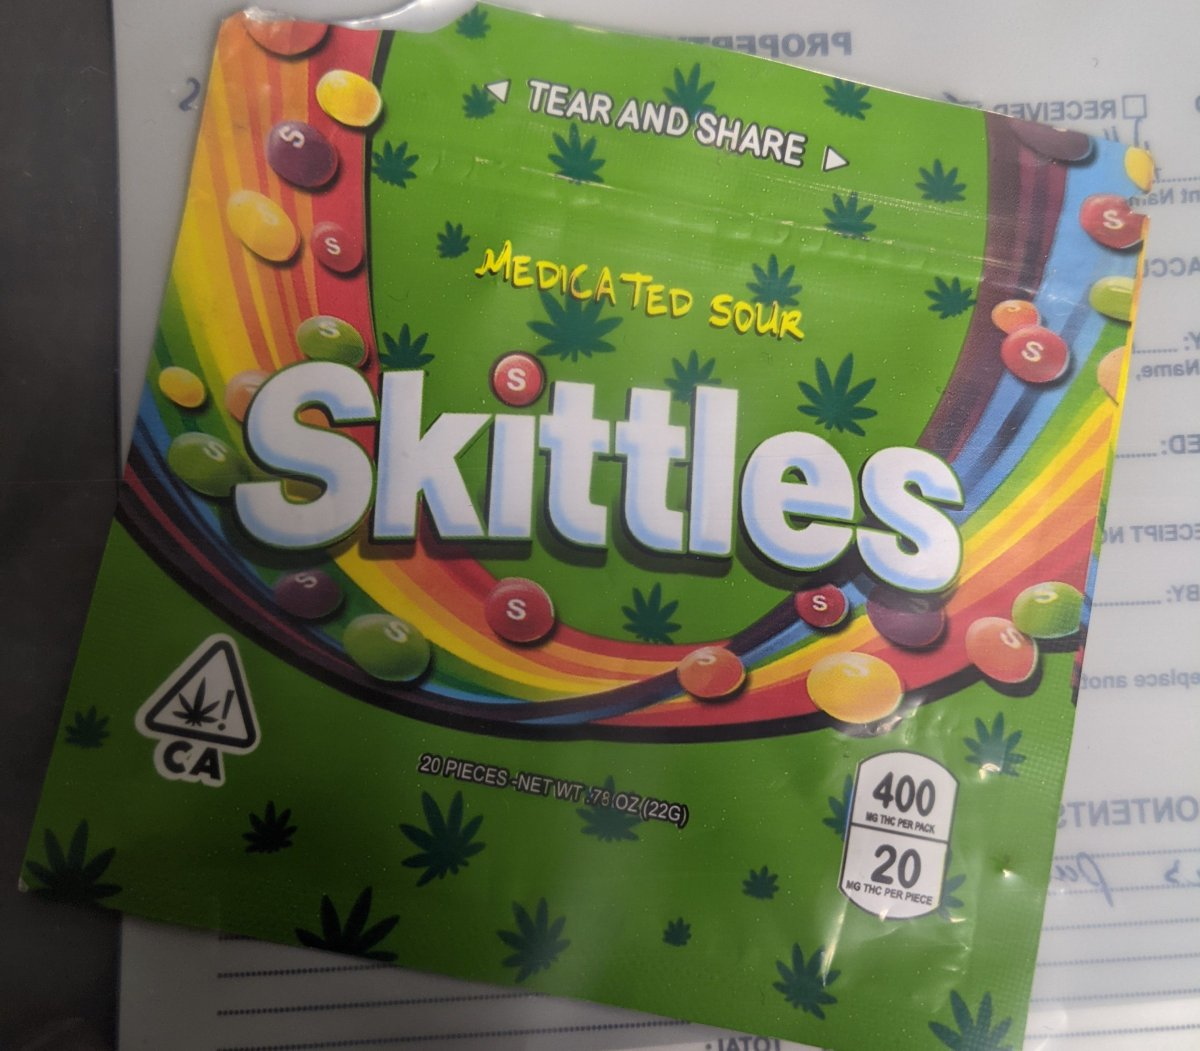 OPP say a 3-year-old ate a large amount of cannabis candy made to look like Skittles. The child was rushed to hospital in life-threatening condition.